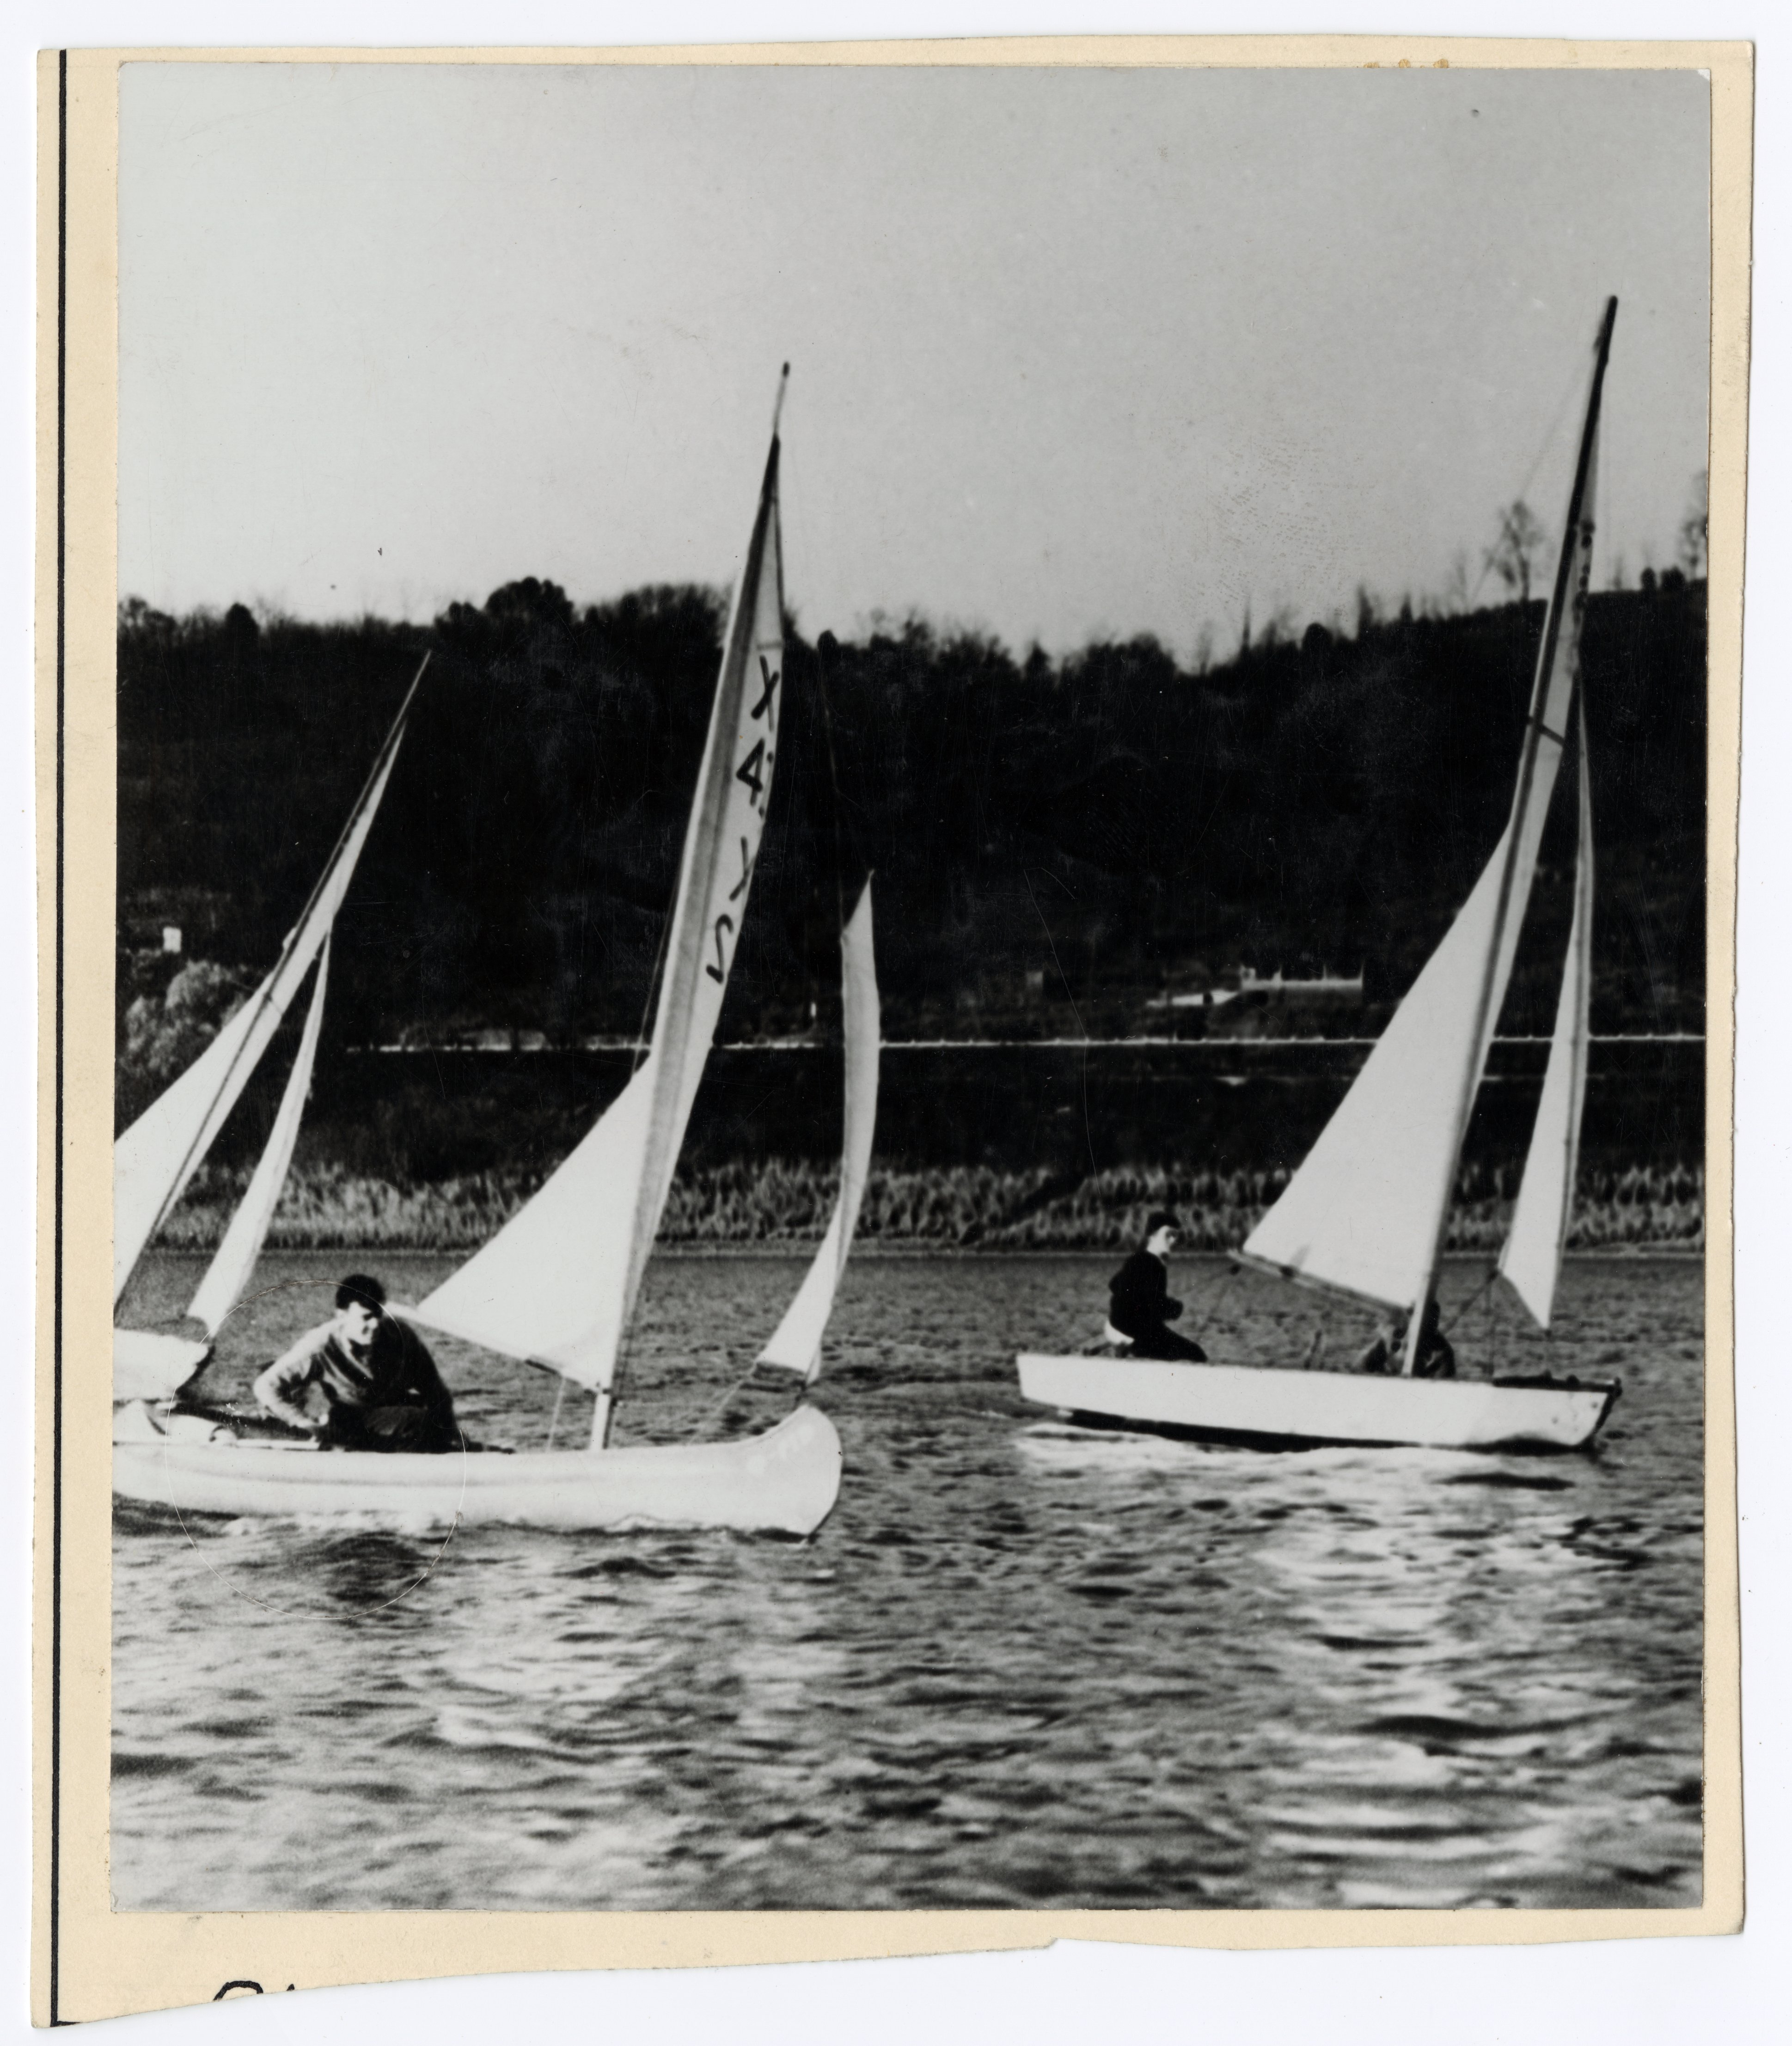 Sailing on the Ohio River courtesy of Ohio History Connection